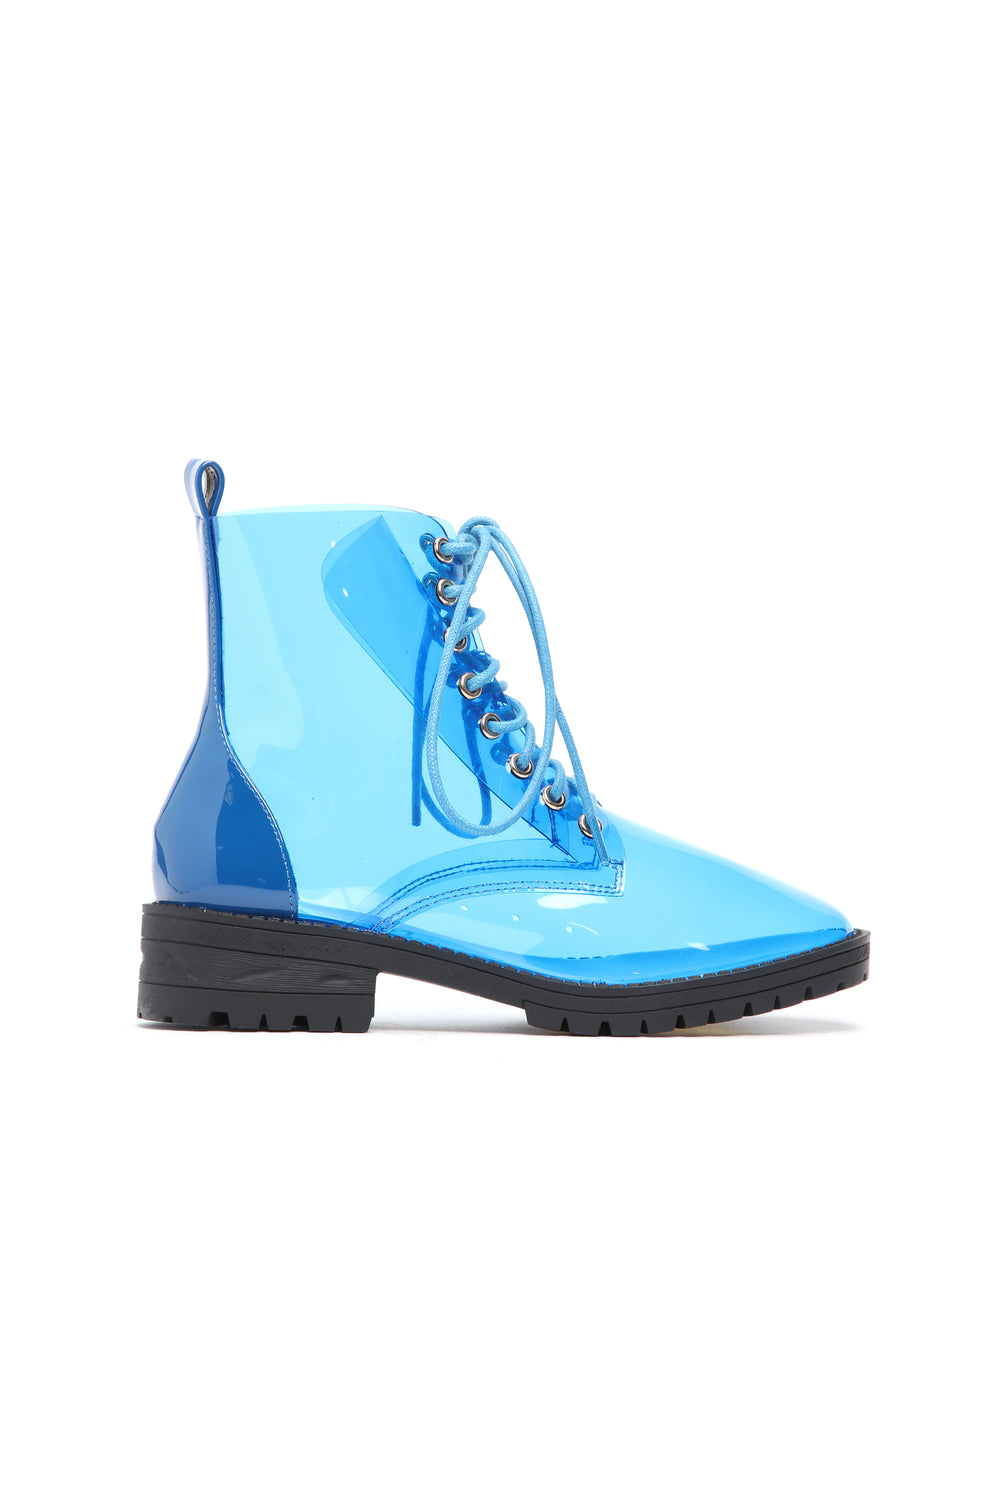 Are We Not Clear Bootie - Blue